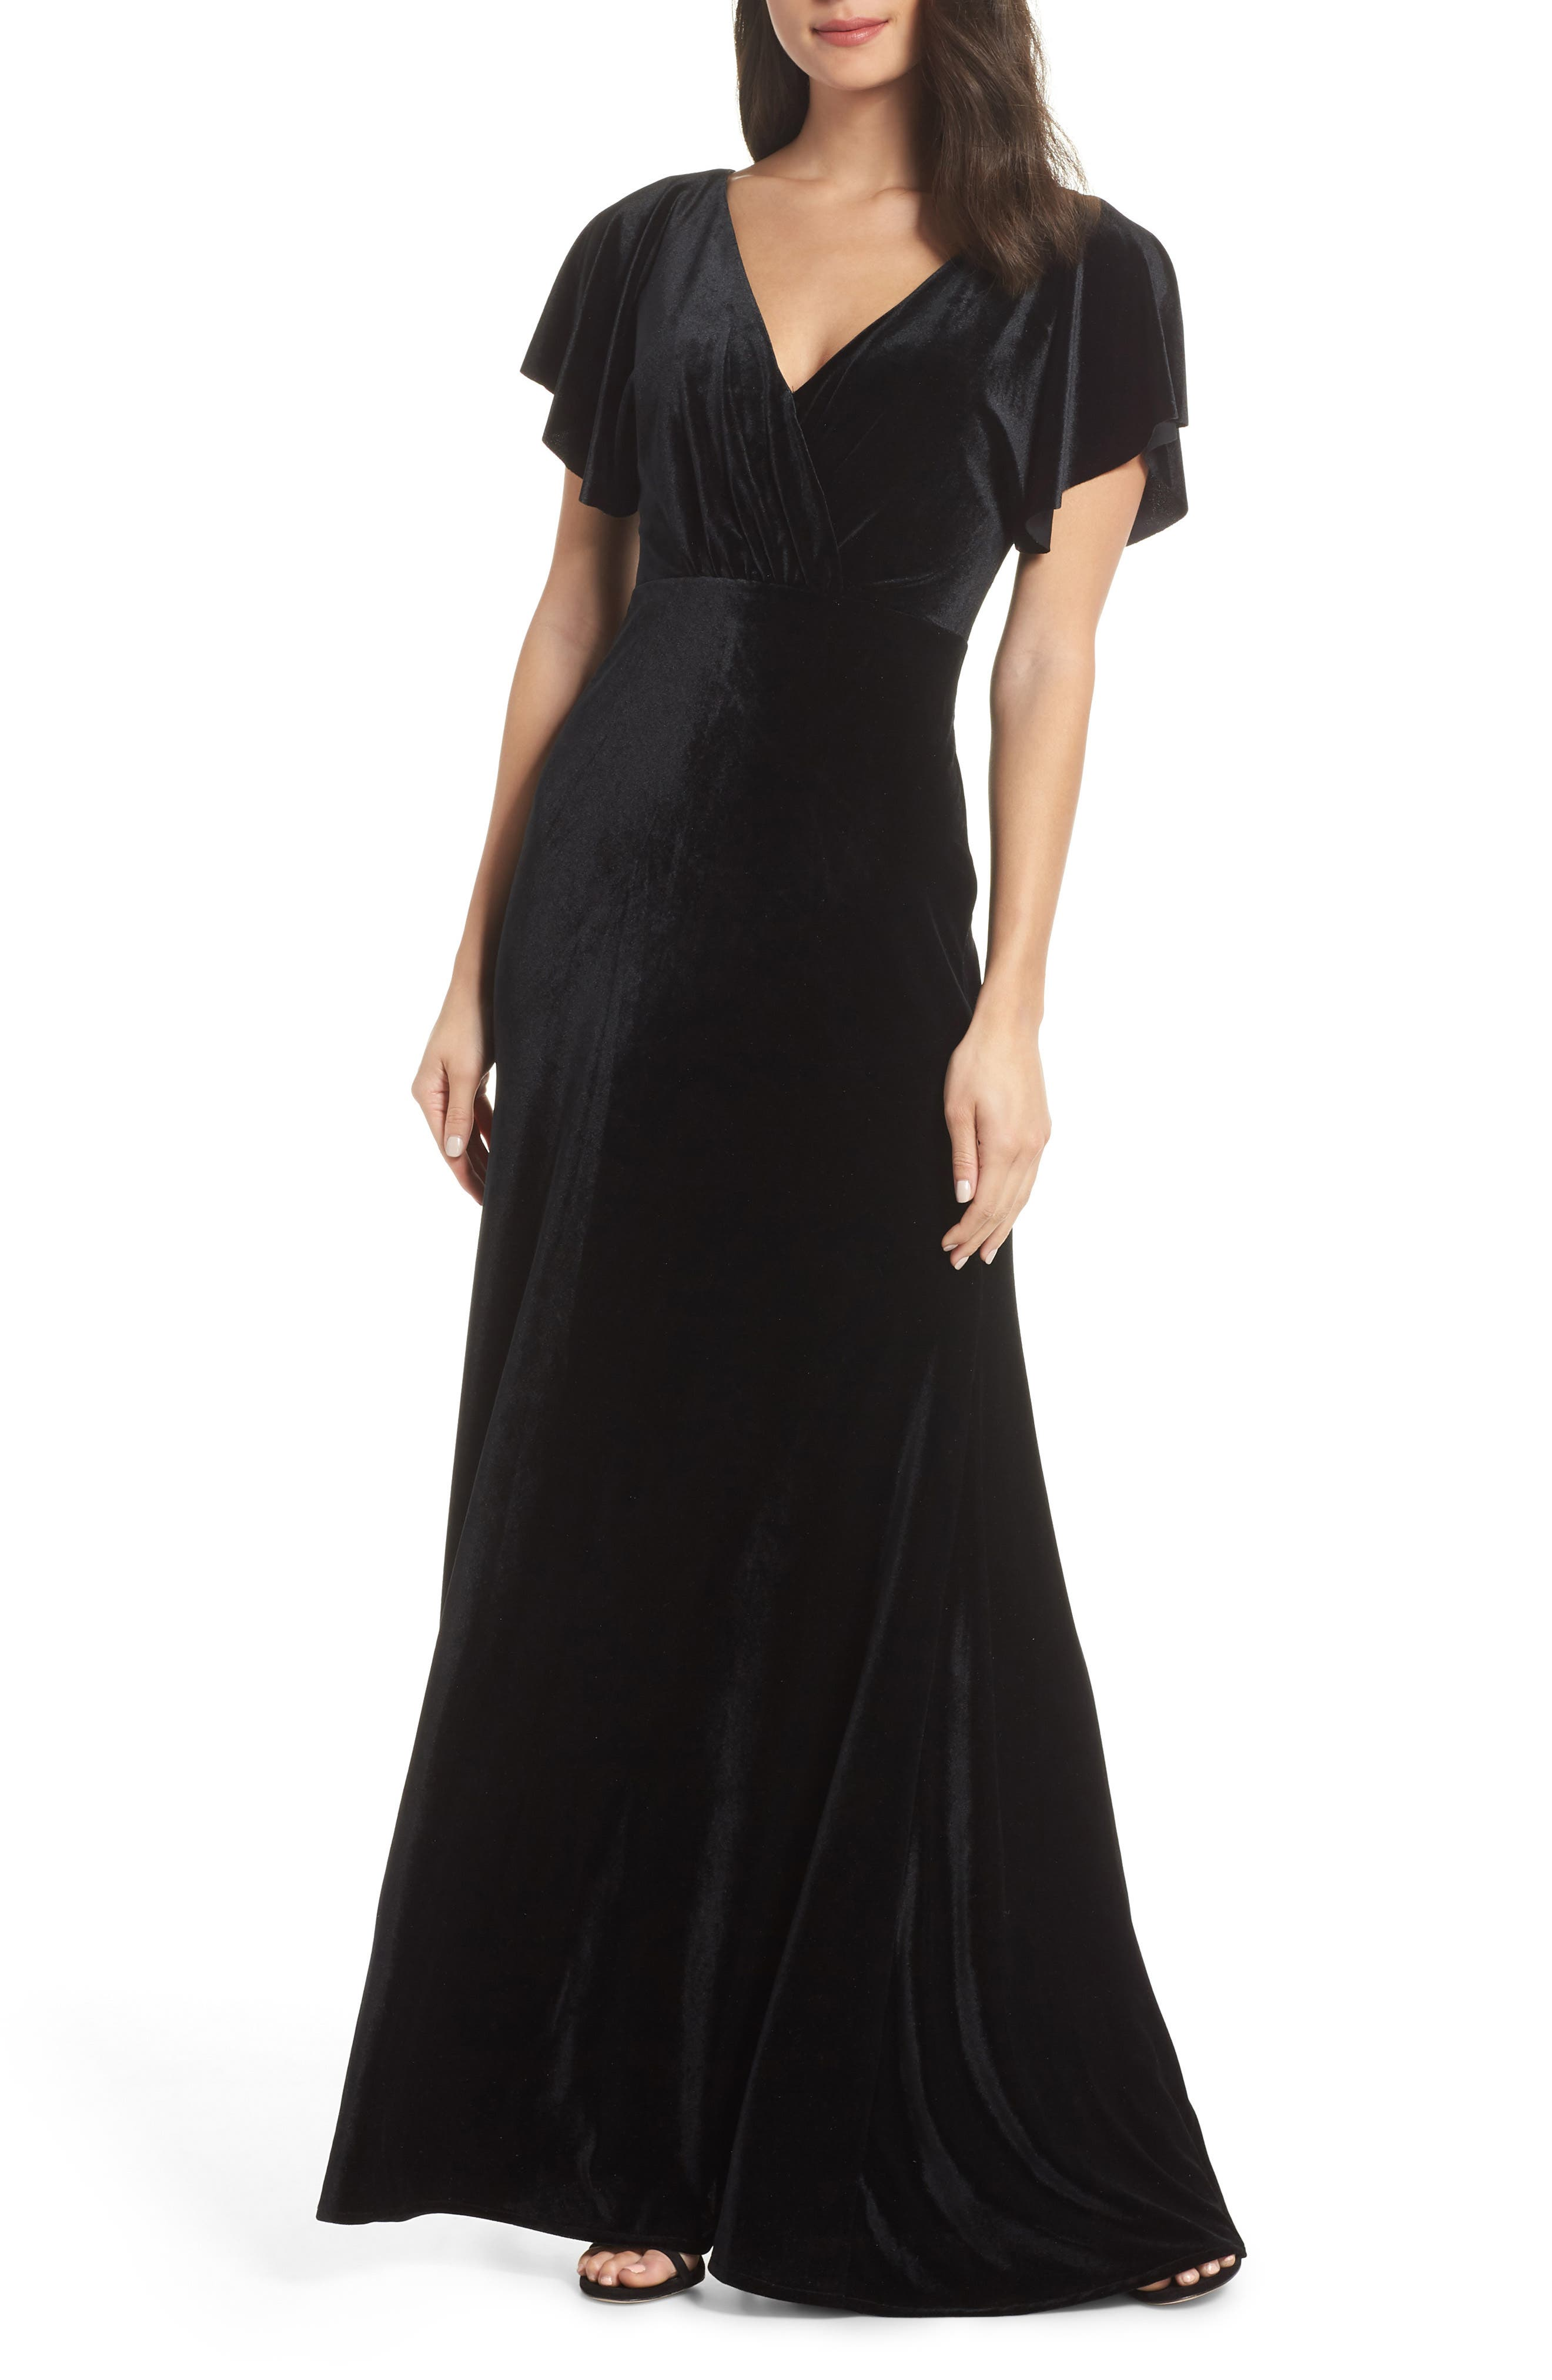 1930s Dresses | 30s Art Deco Dress Womens Jenny Yoo Ellis Flutter Sleeve Stretch Velvet Gown Size 12 - Black $295.00 AT vintagedancer.com